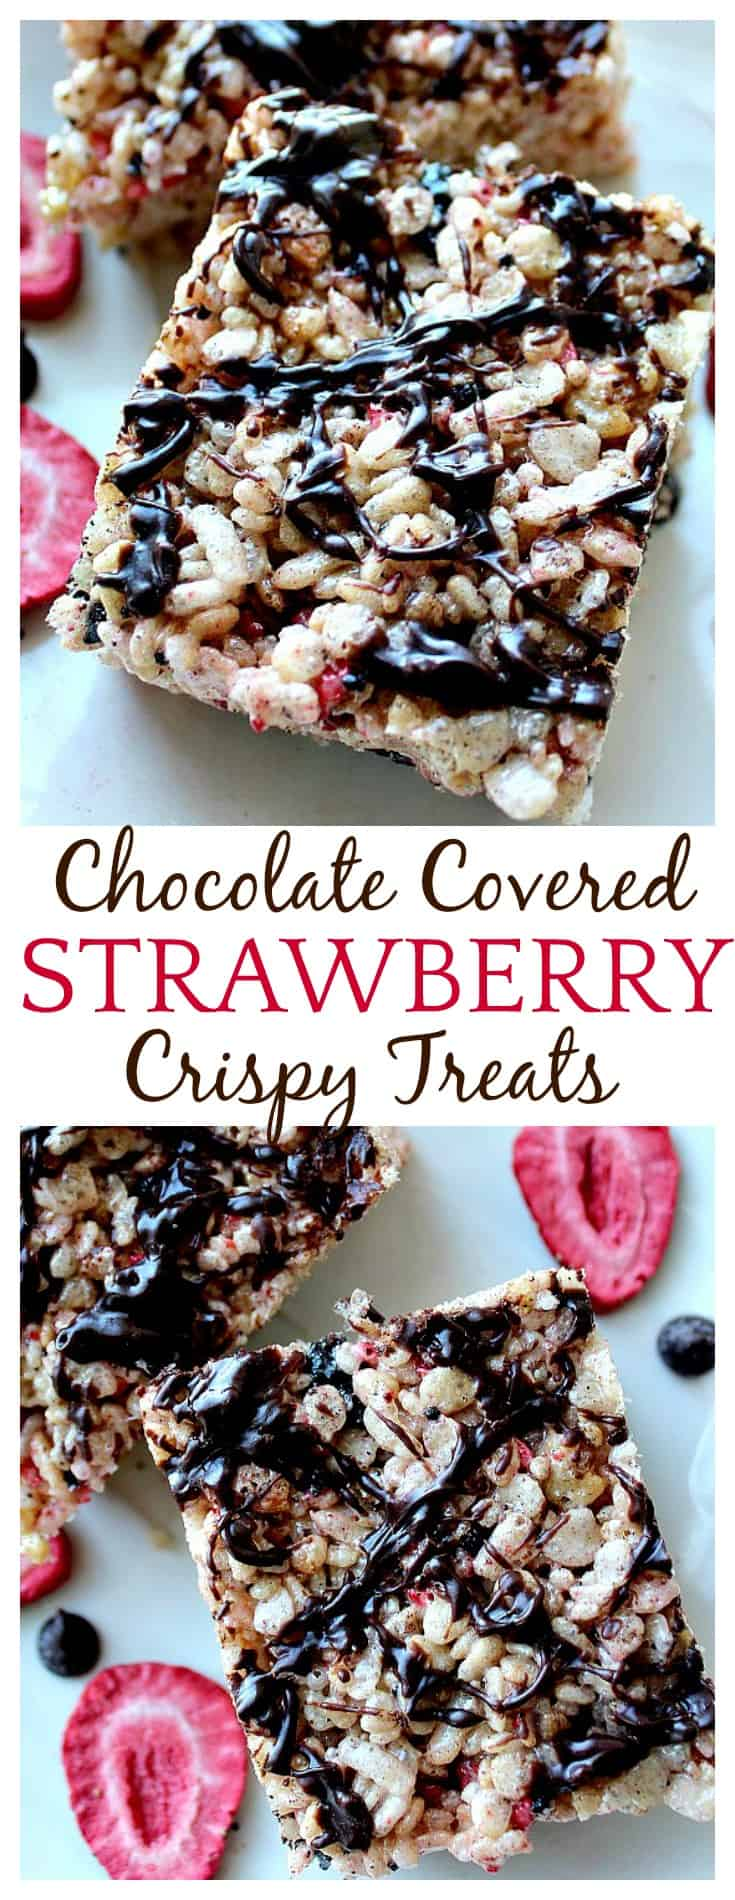 If you love chocolate covered strawberries, you have got to try these Chocolate Covered Strawberry Crispy Rice Treats - with chocolate and strawberry all throughout, these aren't just for the kids :) These would make a great Valentine's Day dessert too!